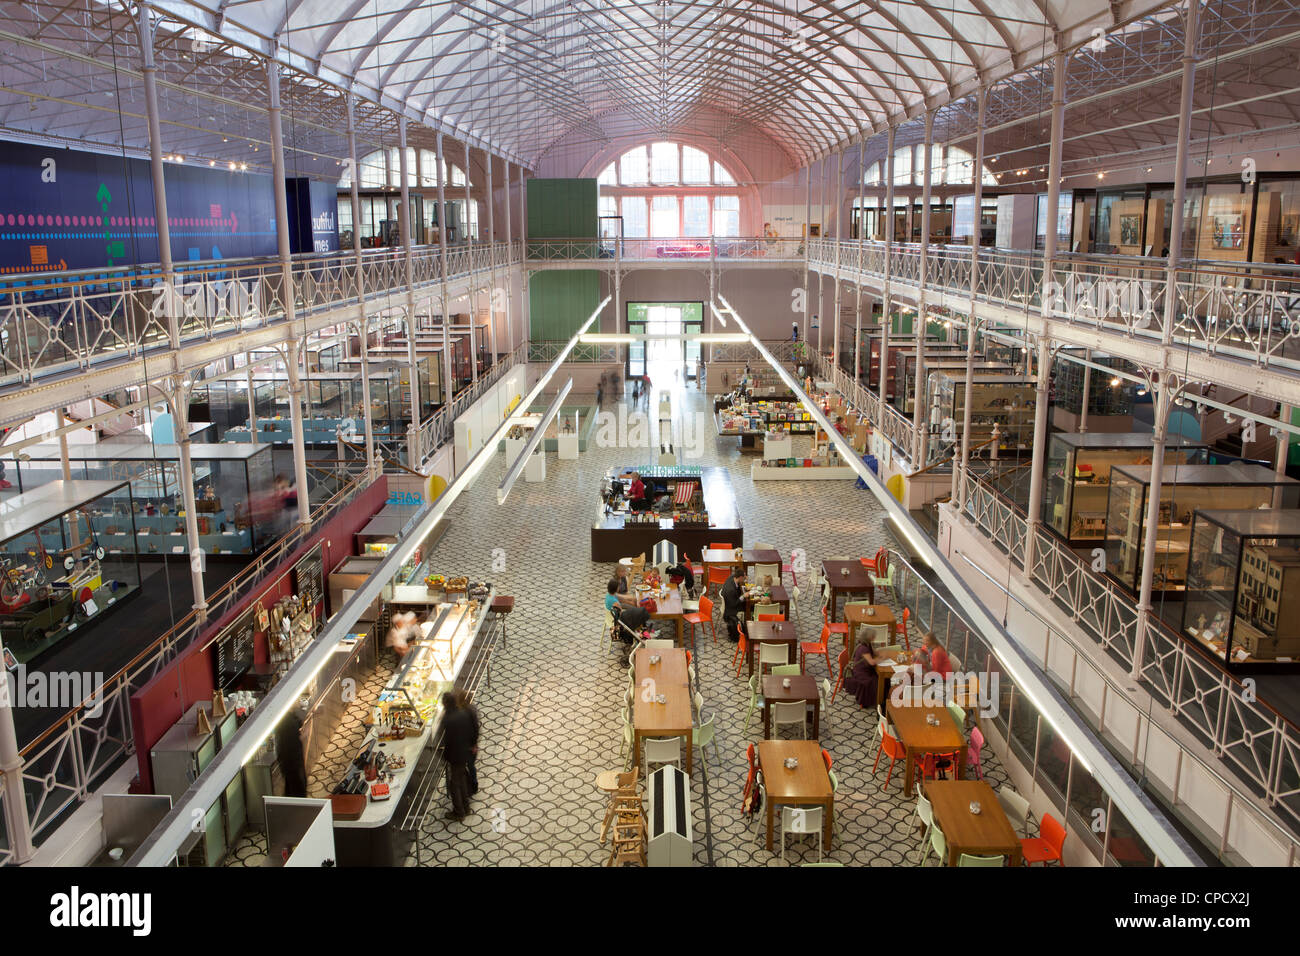 Museum of Childhood Bethnal Green East London - Stock Image